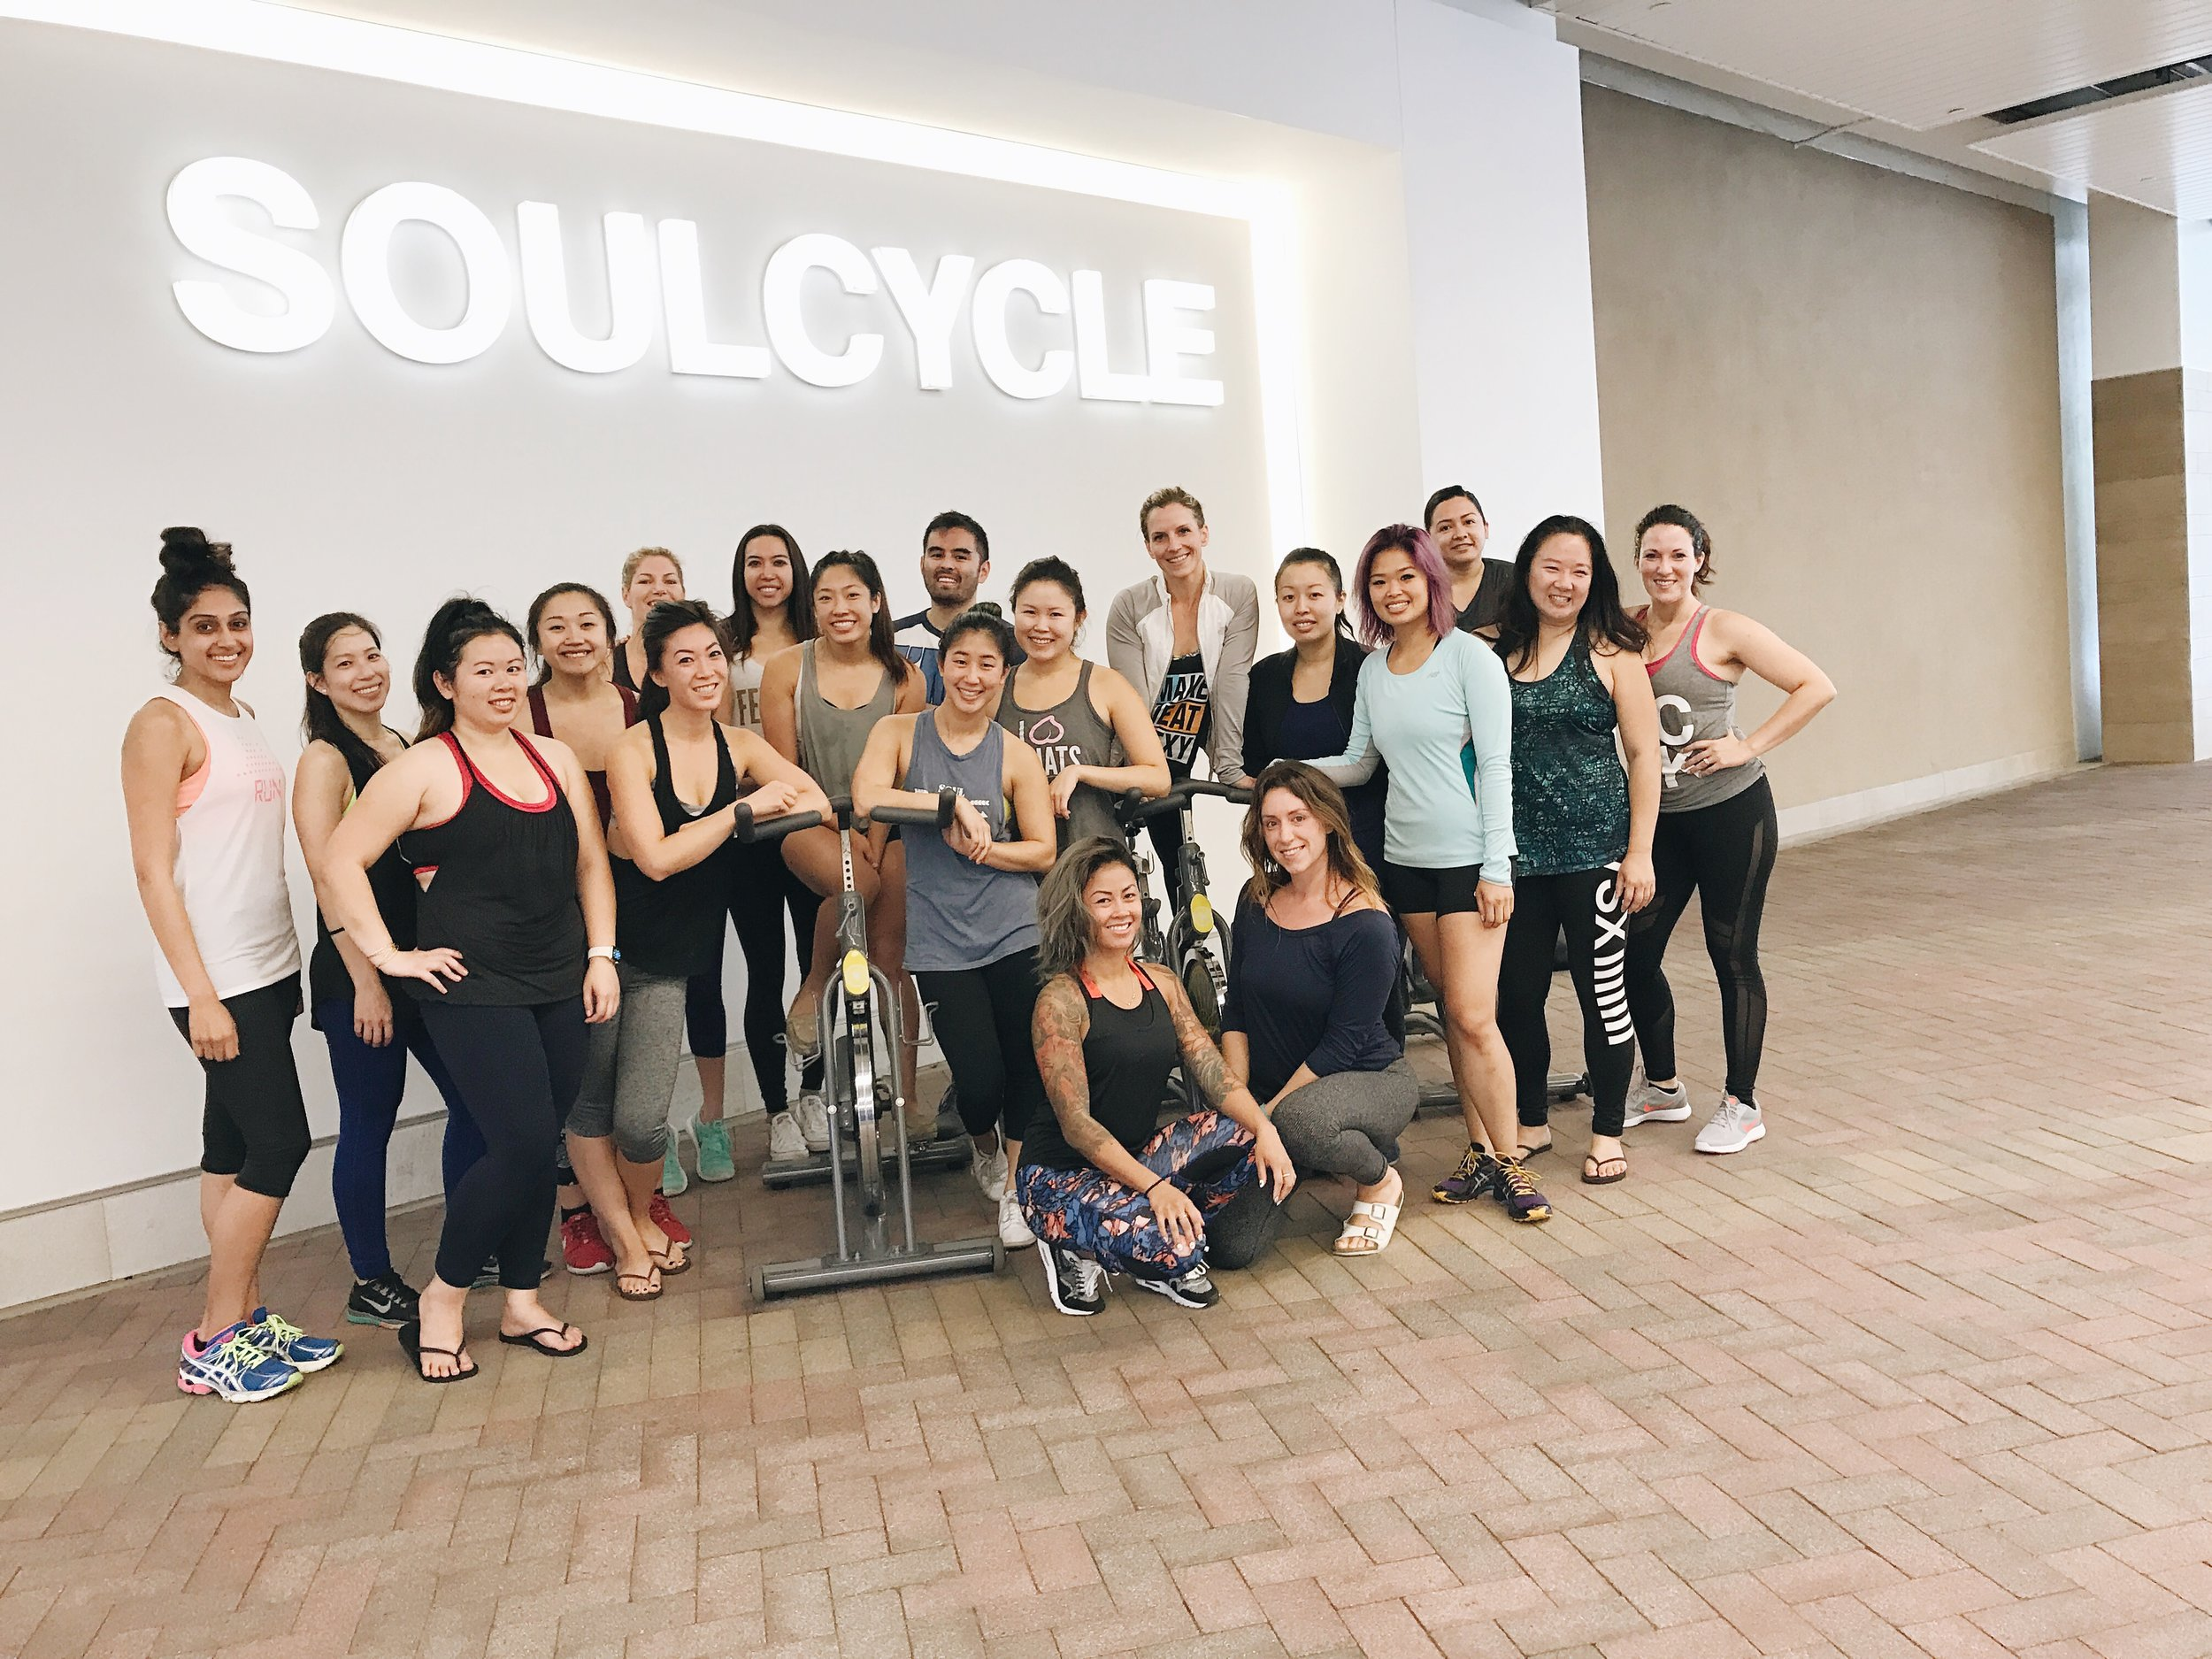 SOULCYCLE || 10.23.2016